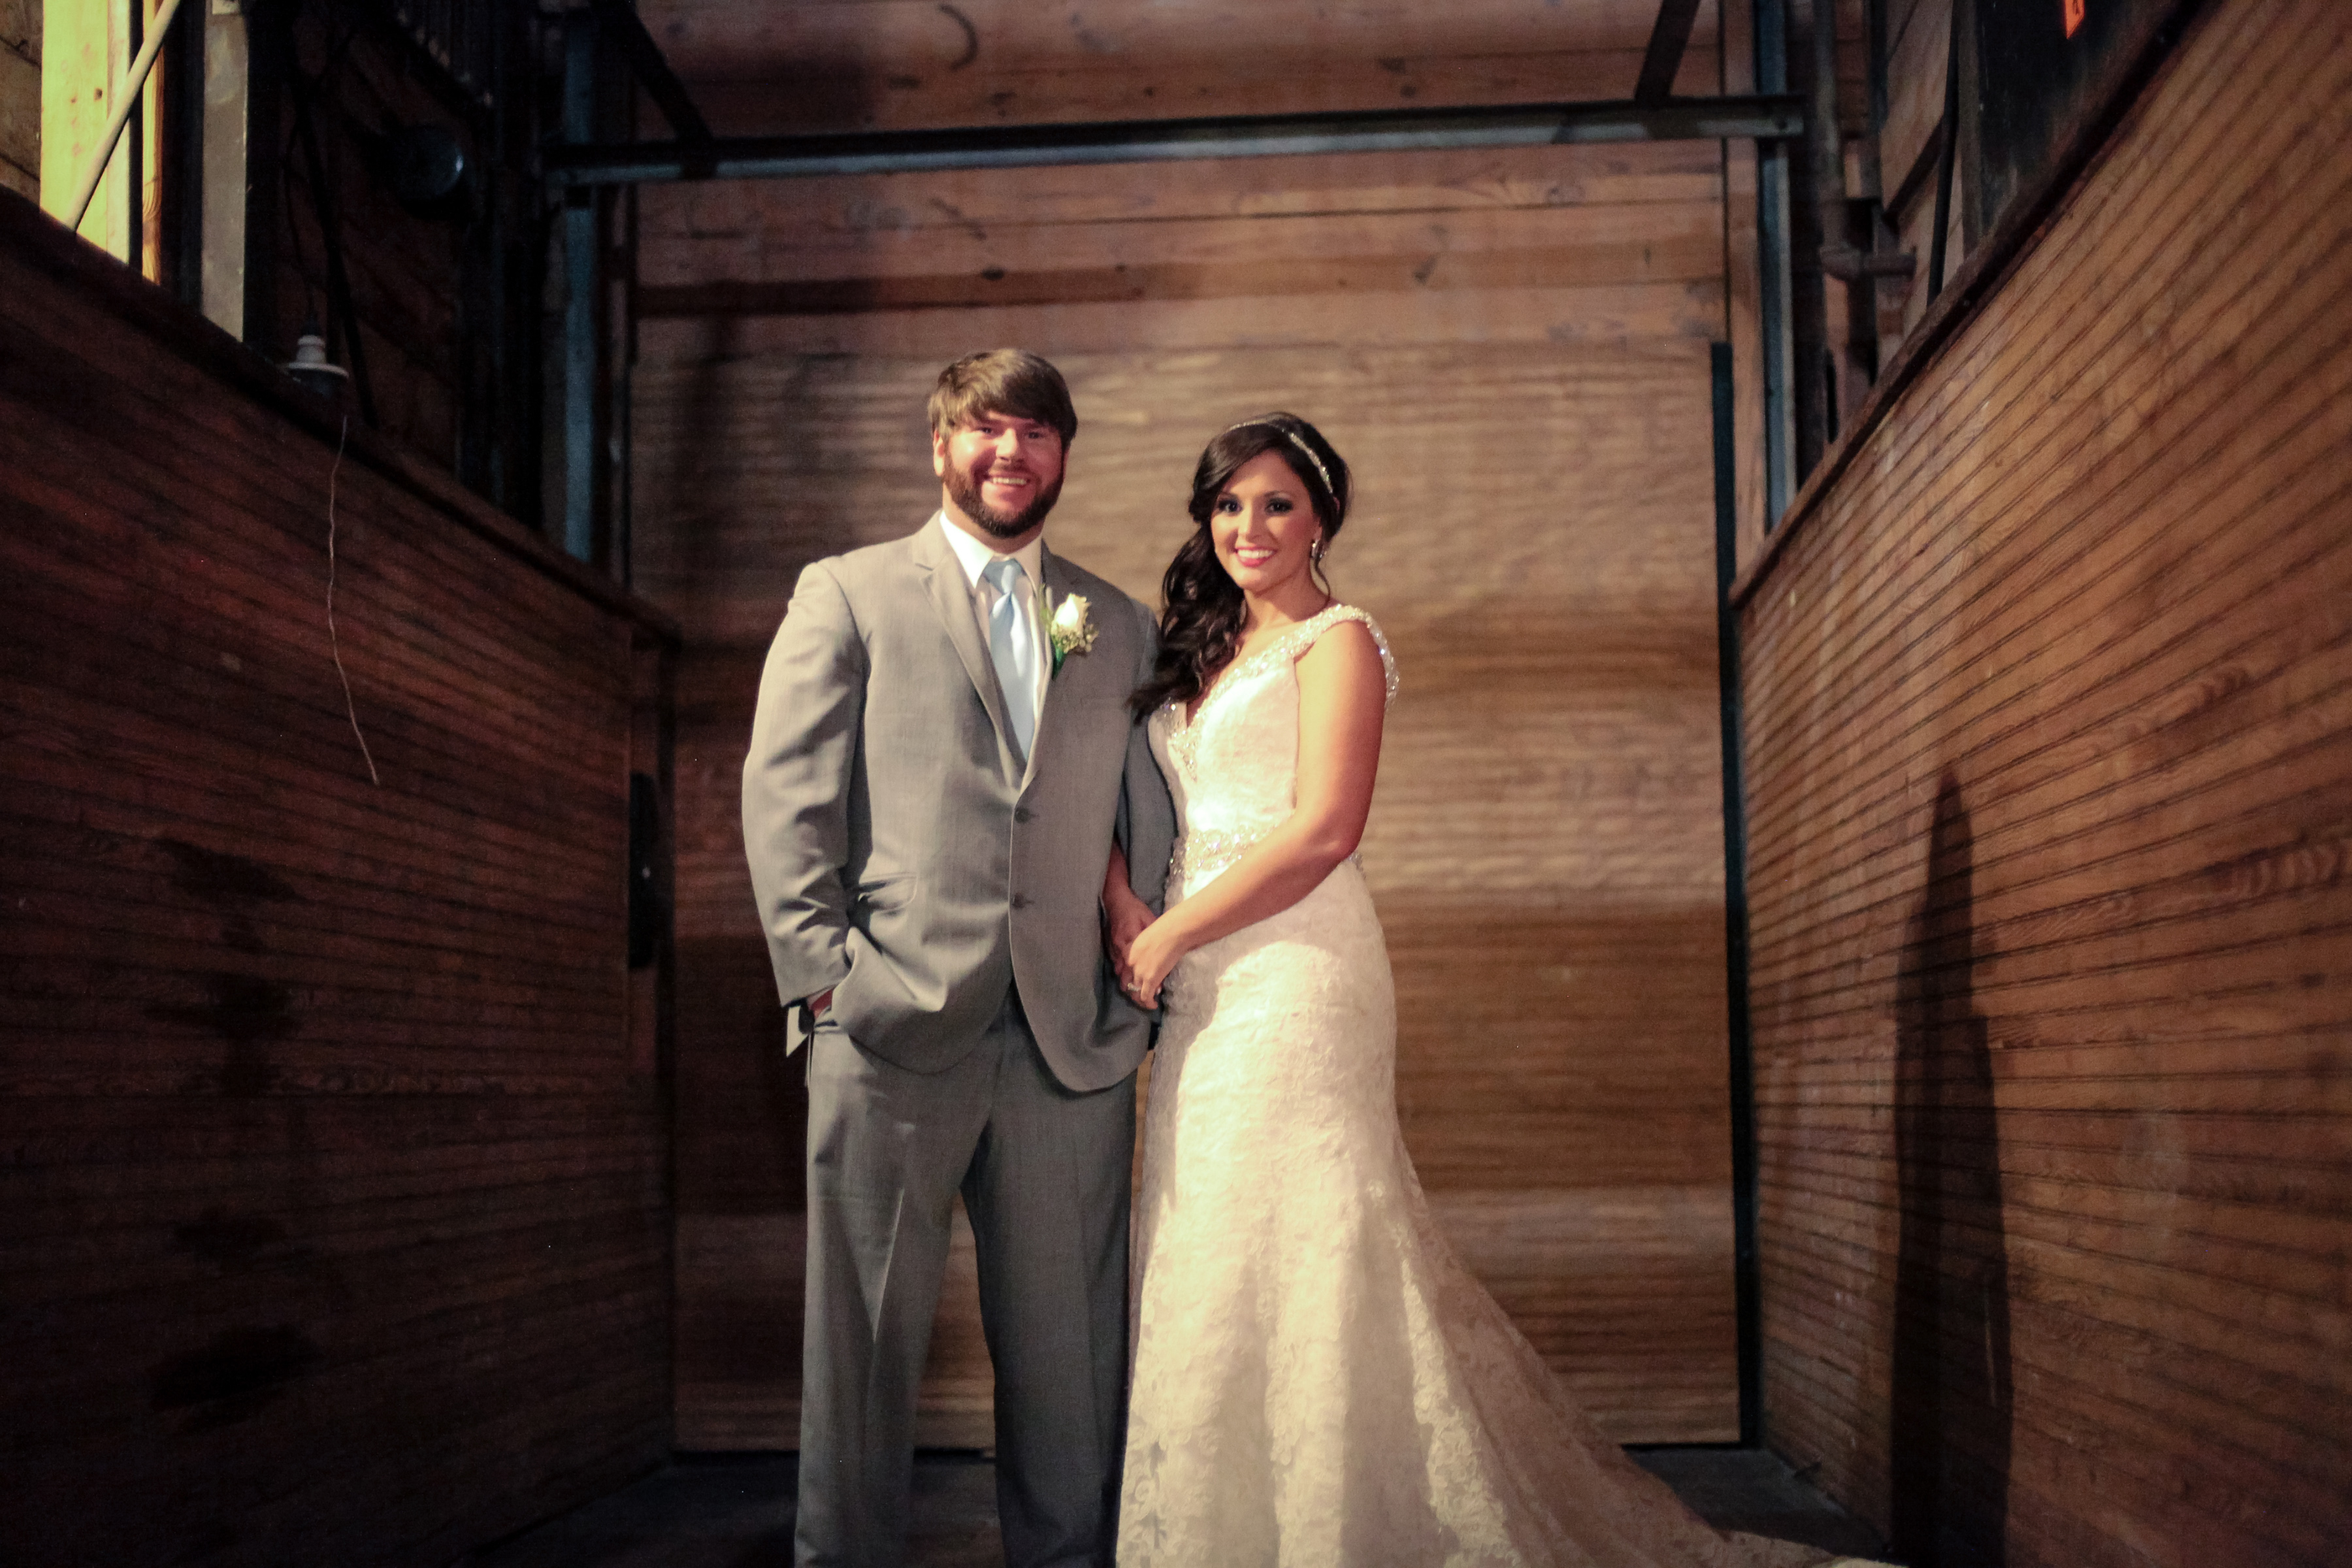 Fridays featured wedding tara blaine chad wiles i do yall tara blaine chad wiles wed in a beautiful spring wedding ceremony on march 7 2015 in jackson mississippi at the ice house venue ombrellifo Gallery